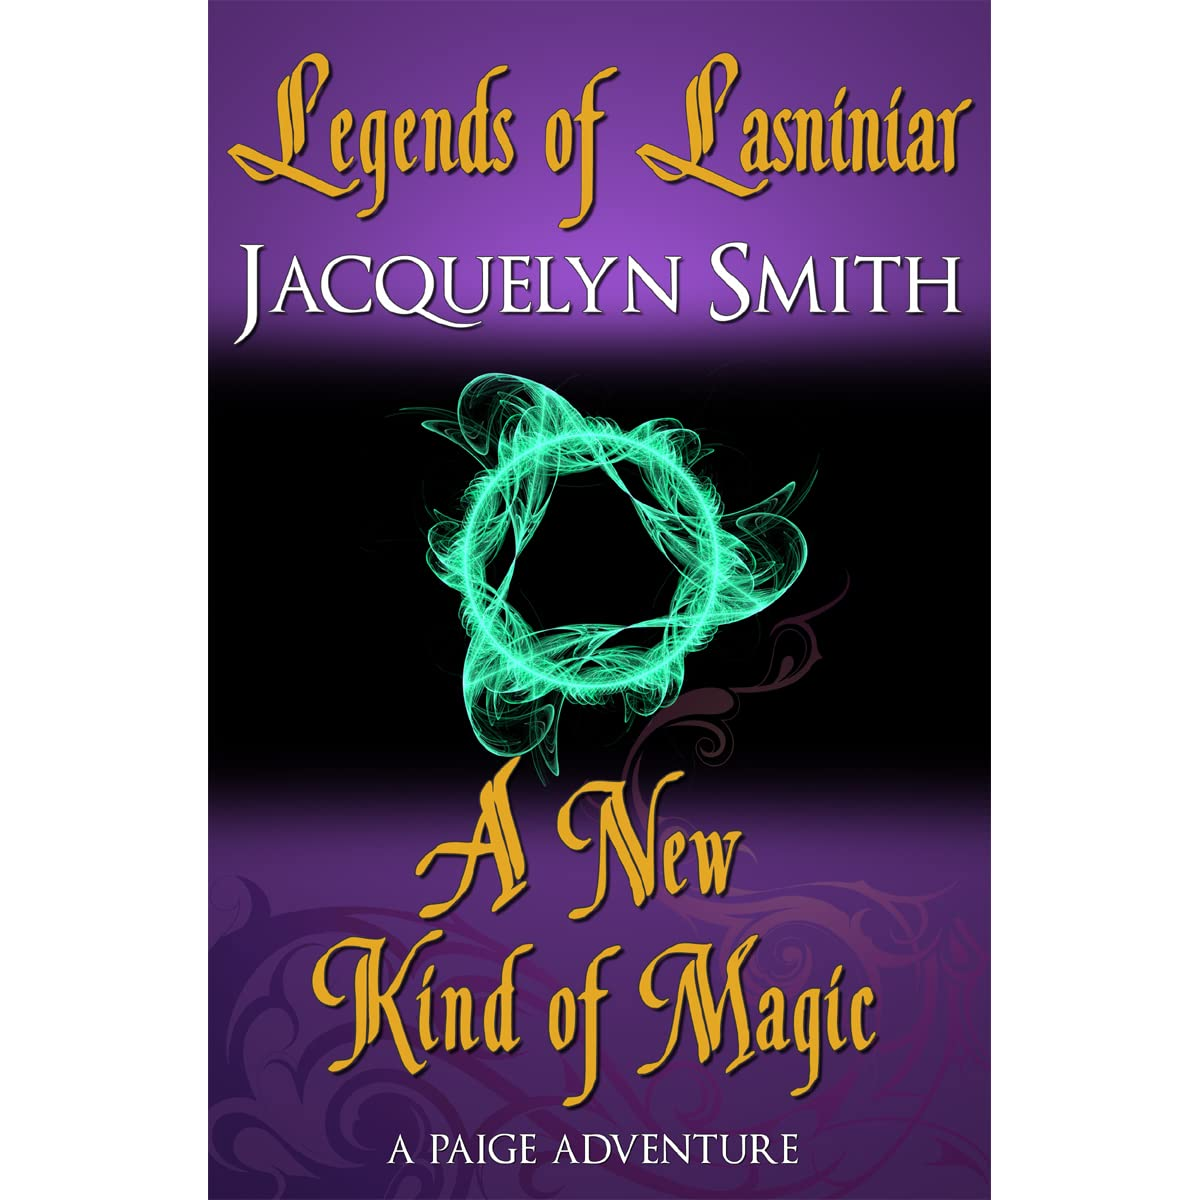 Legends of Lasniniar: The Vow (The World of Lasniniar)